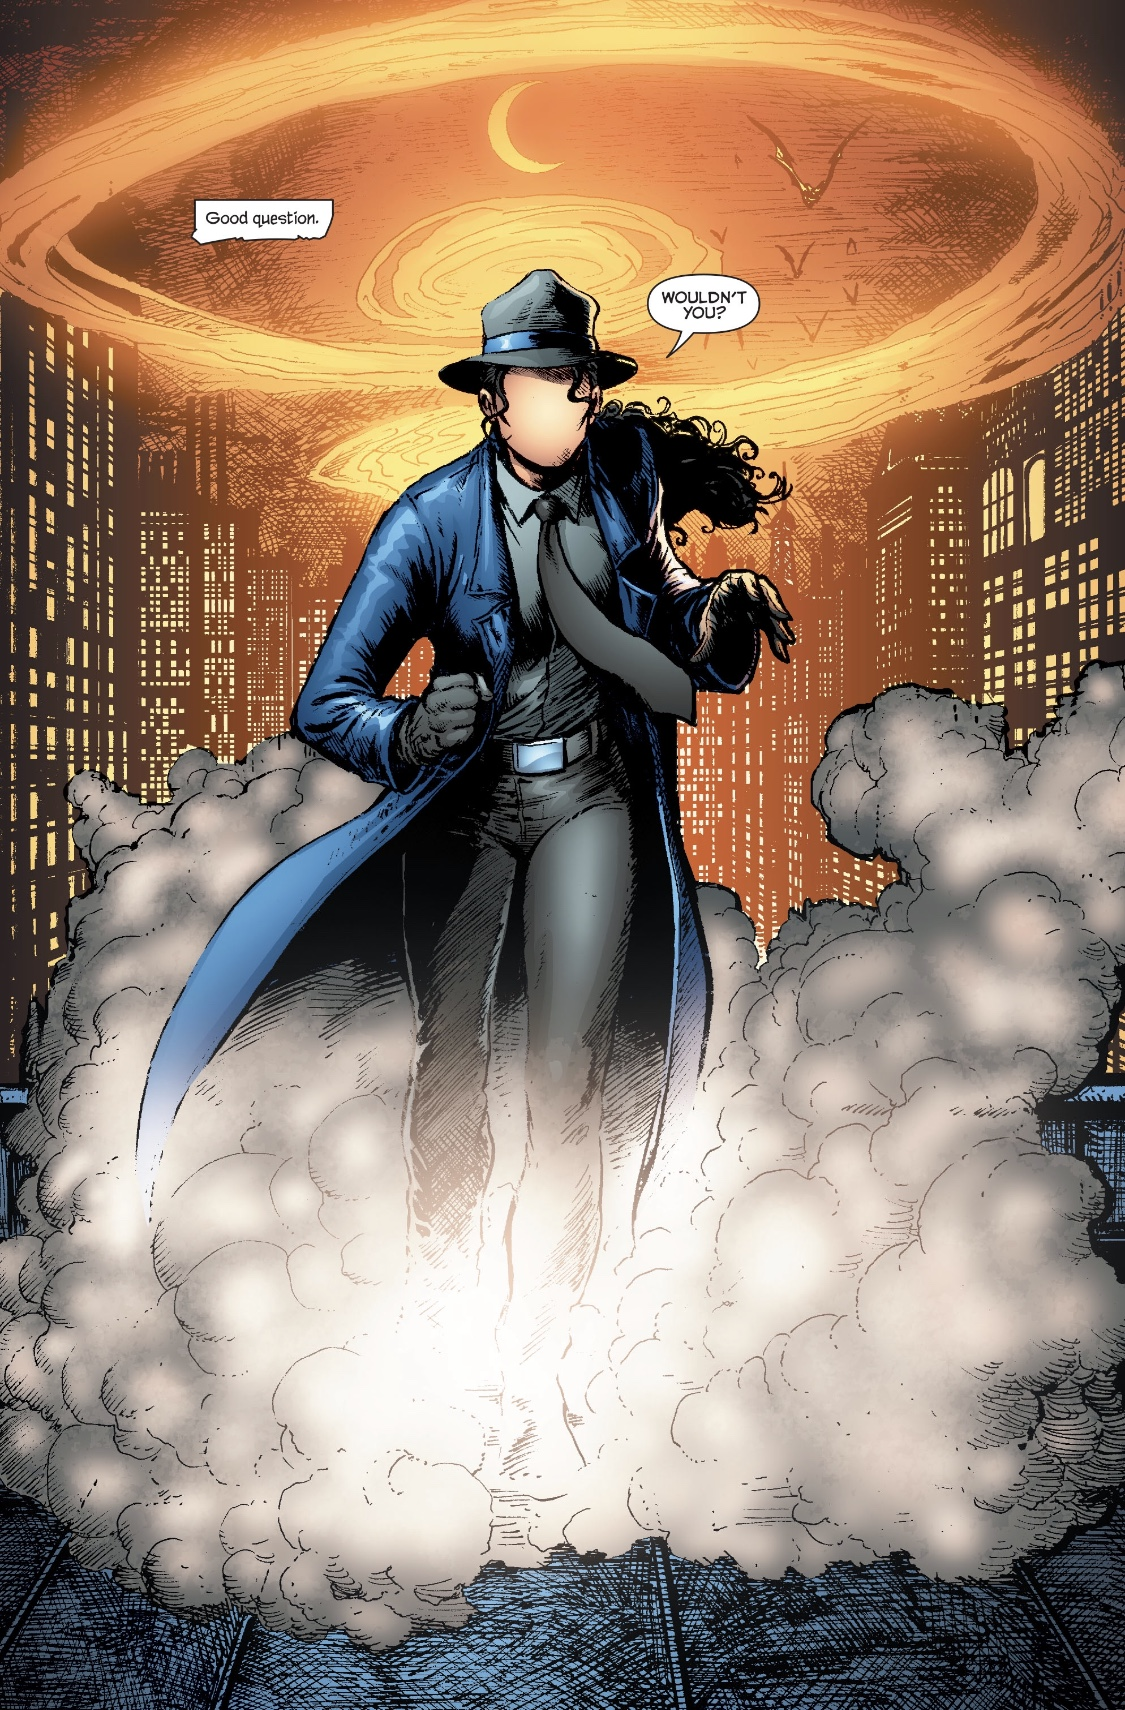 renee-montoya-question.jpg